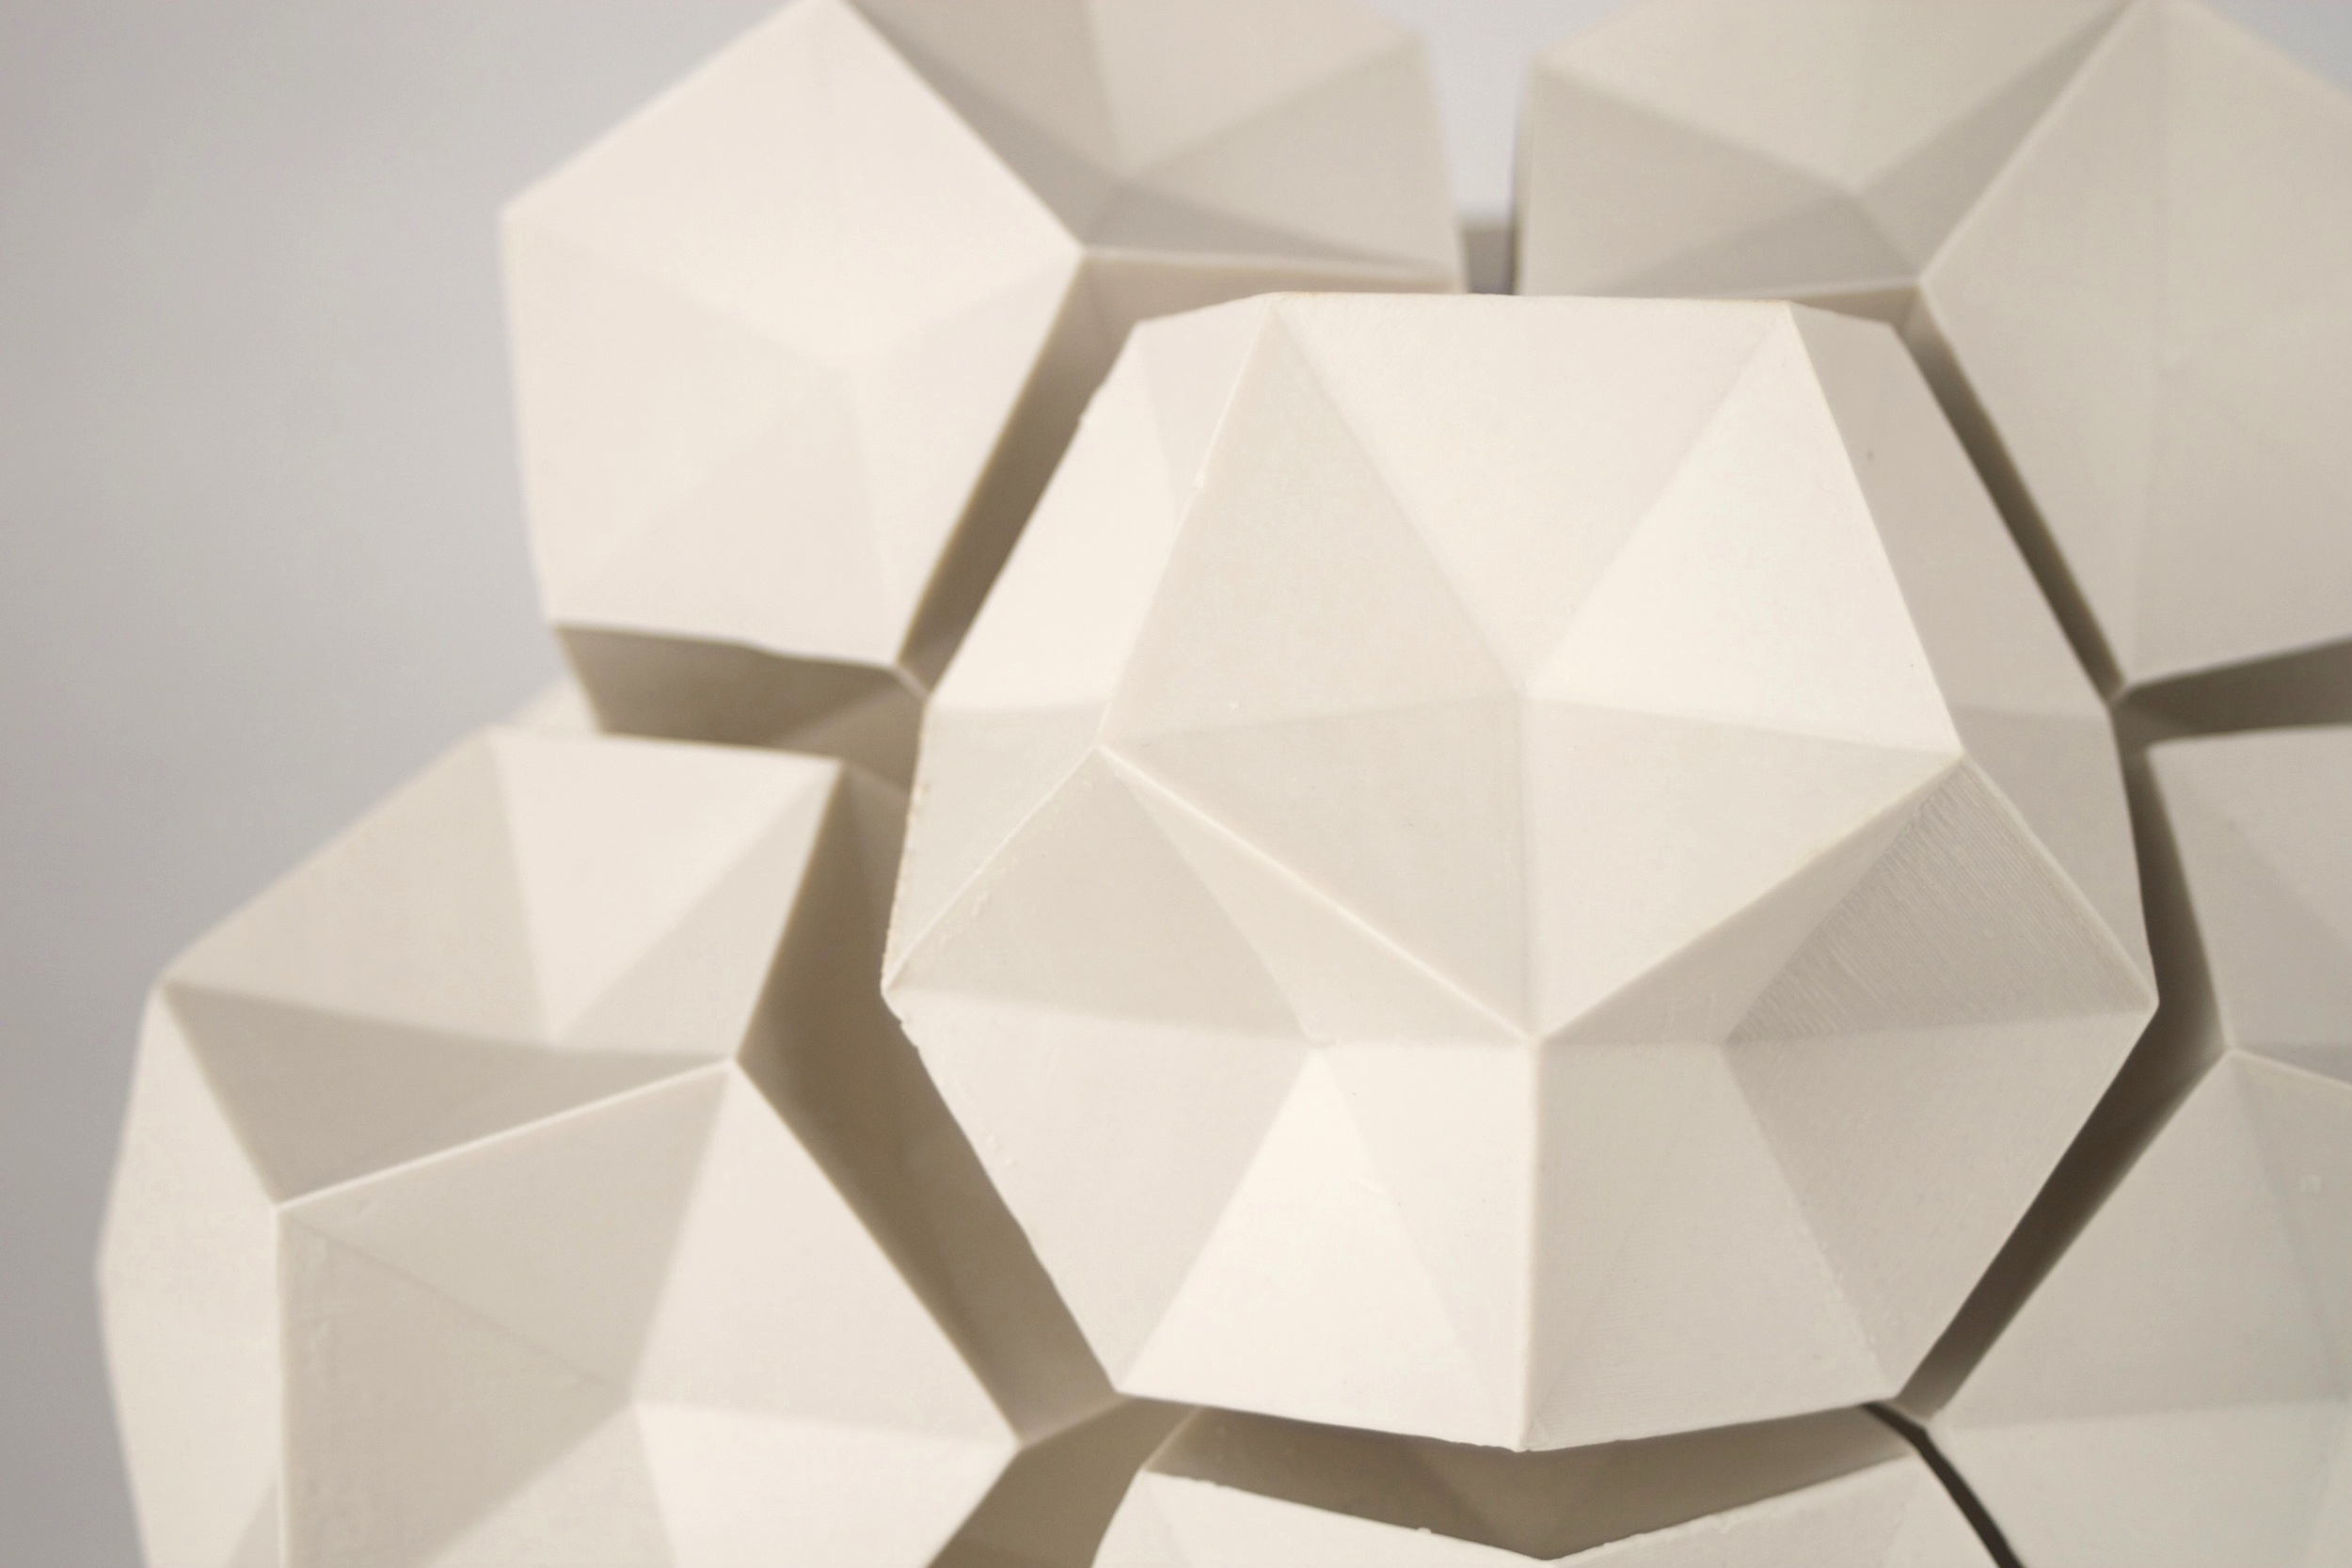 Dodecahedron Construction (Detail)  |  14 x 14 x 14 inches  |  Porcelain  |  2016